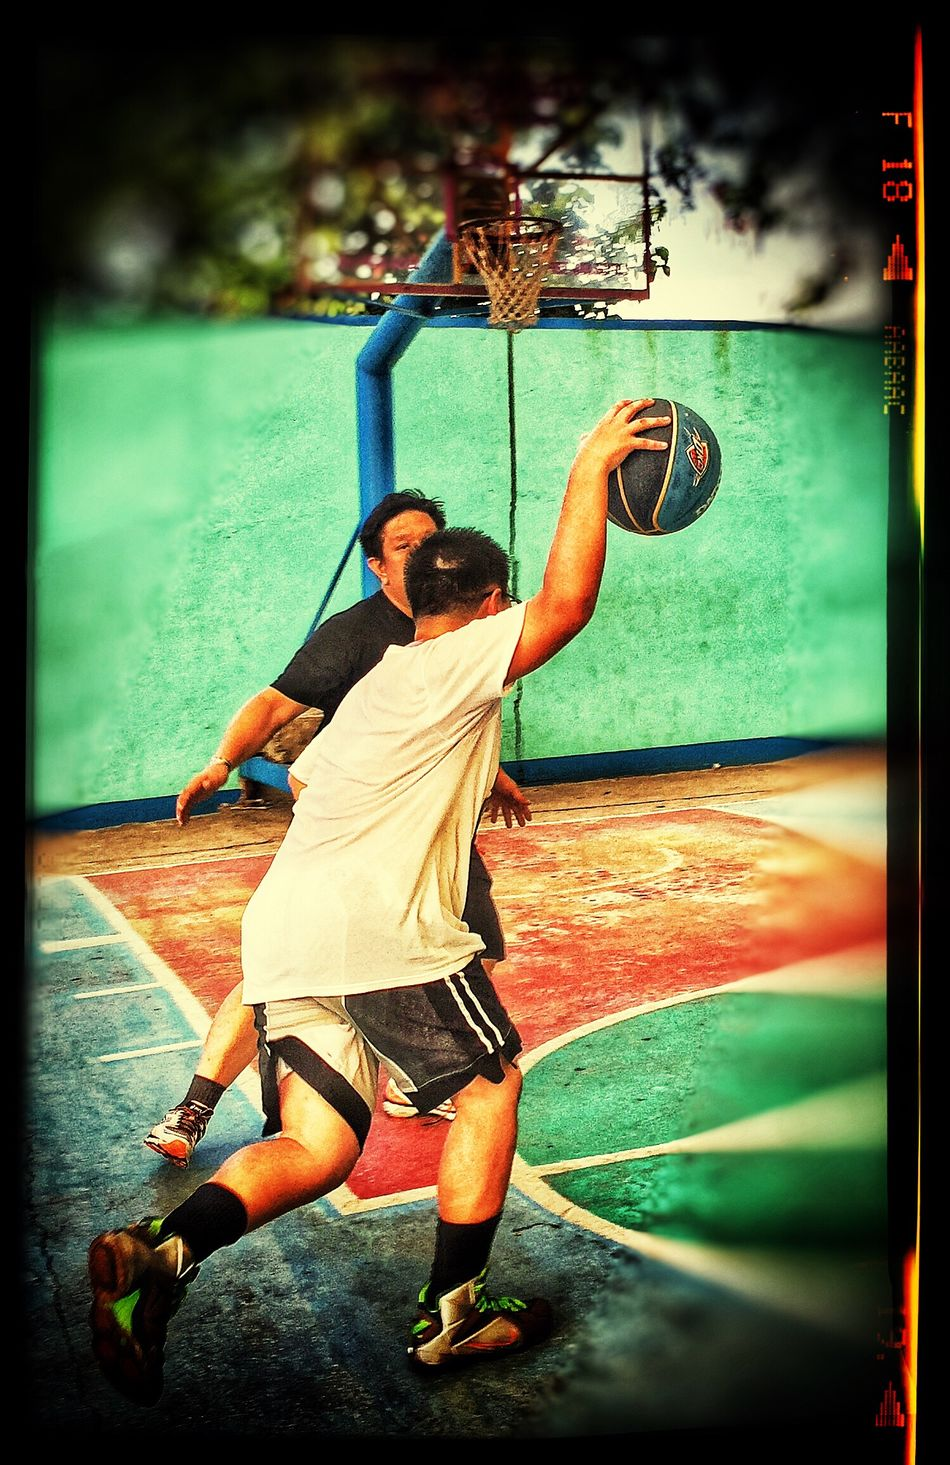 Iphonephotography Father & Son Streetbasketball